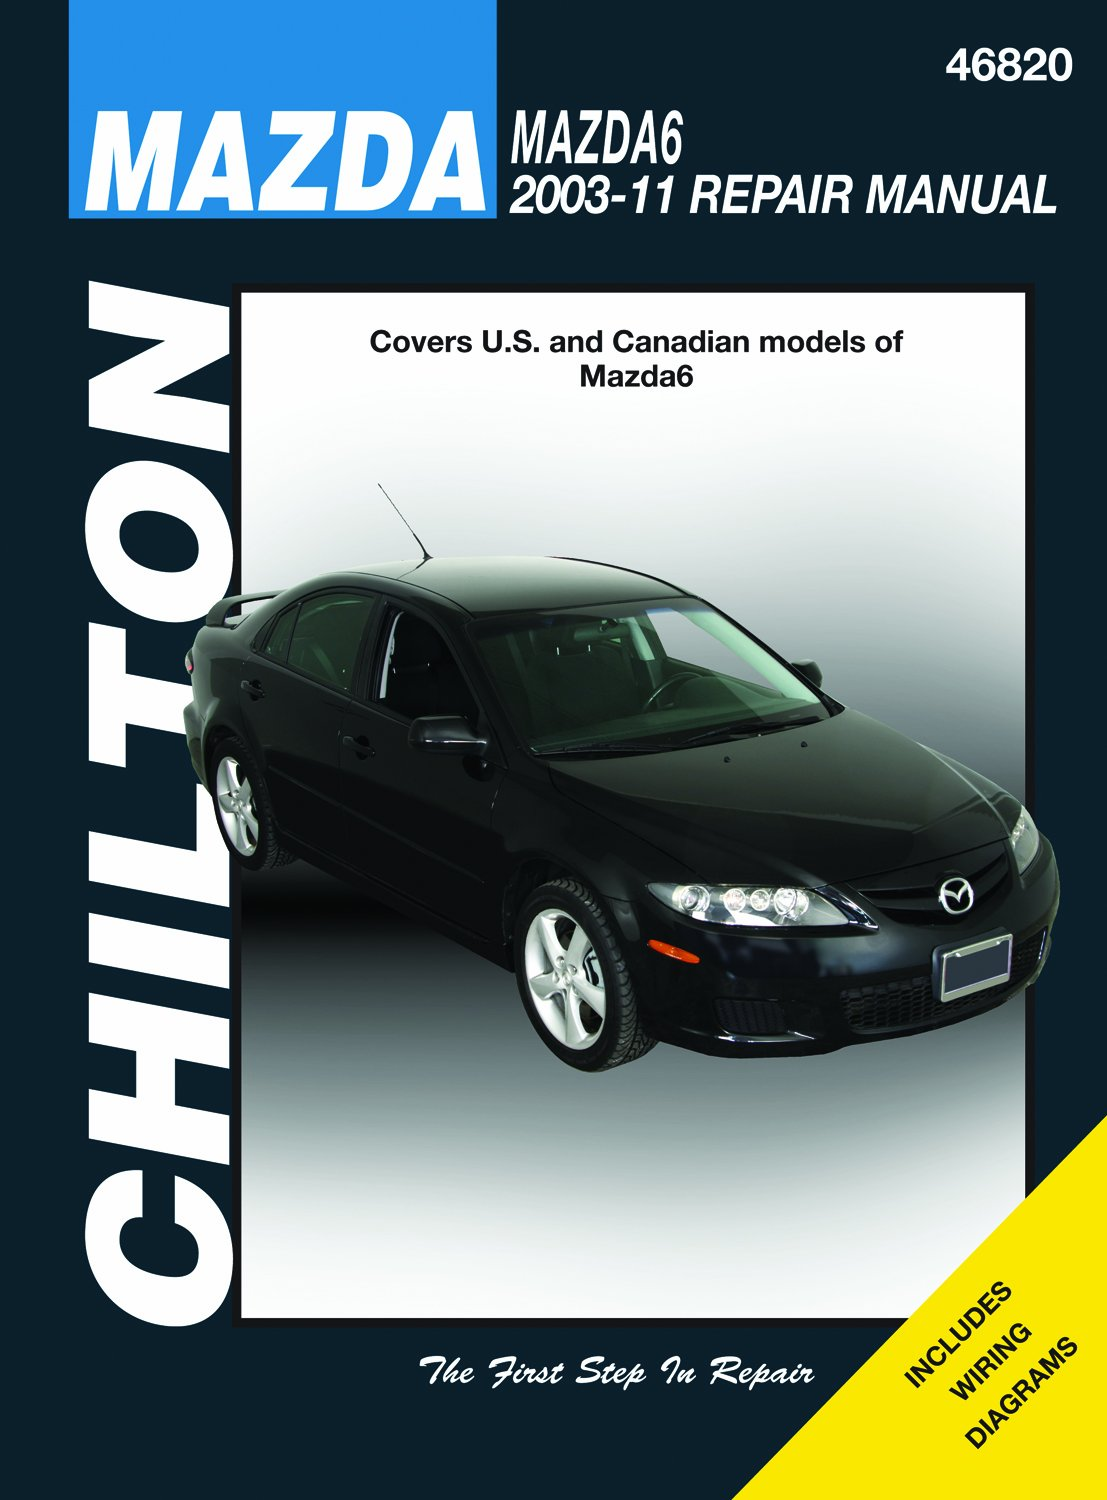 Mazda 6 Automotive Repair Manual: 2003-2010 (Haynes Automotive Repair  Manuals): Amazon.co.uk: Jeff Killingsworth: 9781563929472: Books